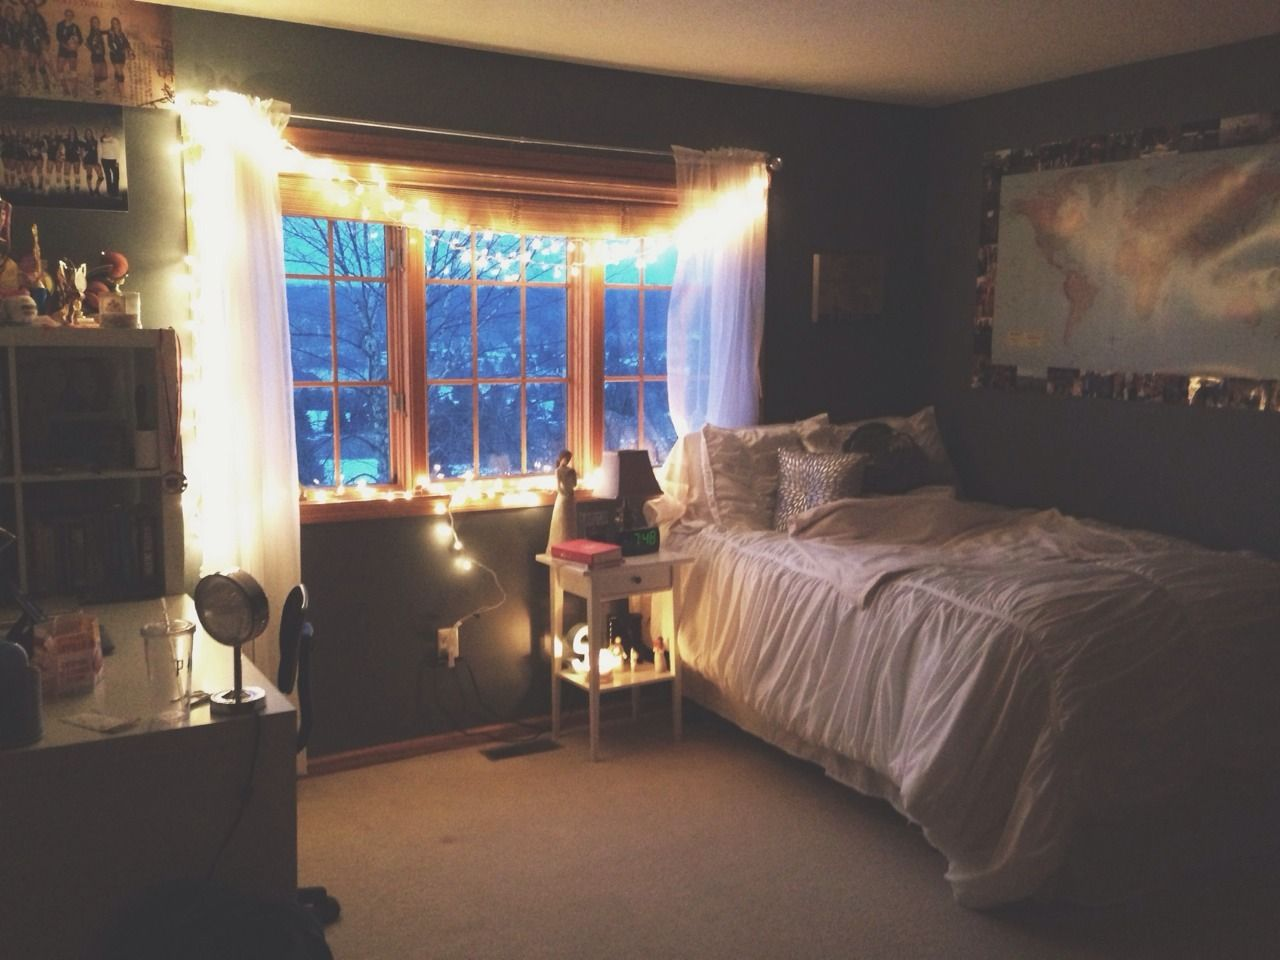 Beautiful master bedrooms tumblr - Beautiful Room Lights Can Completely Transform A Bedroom From Boring To Radiant And Fun